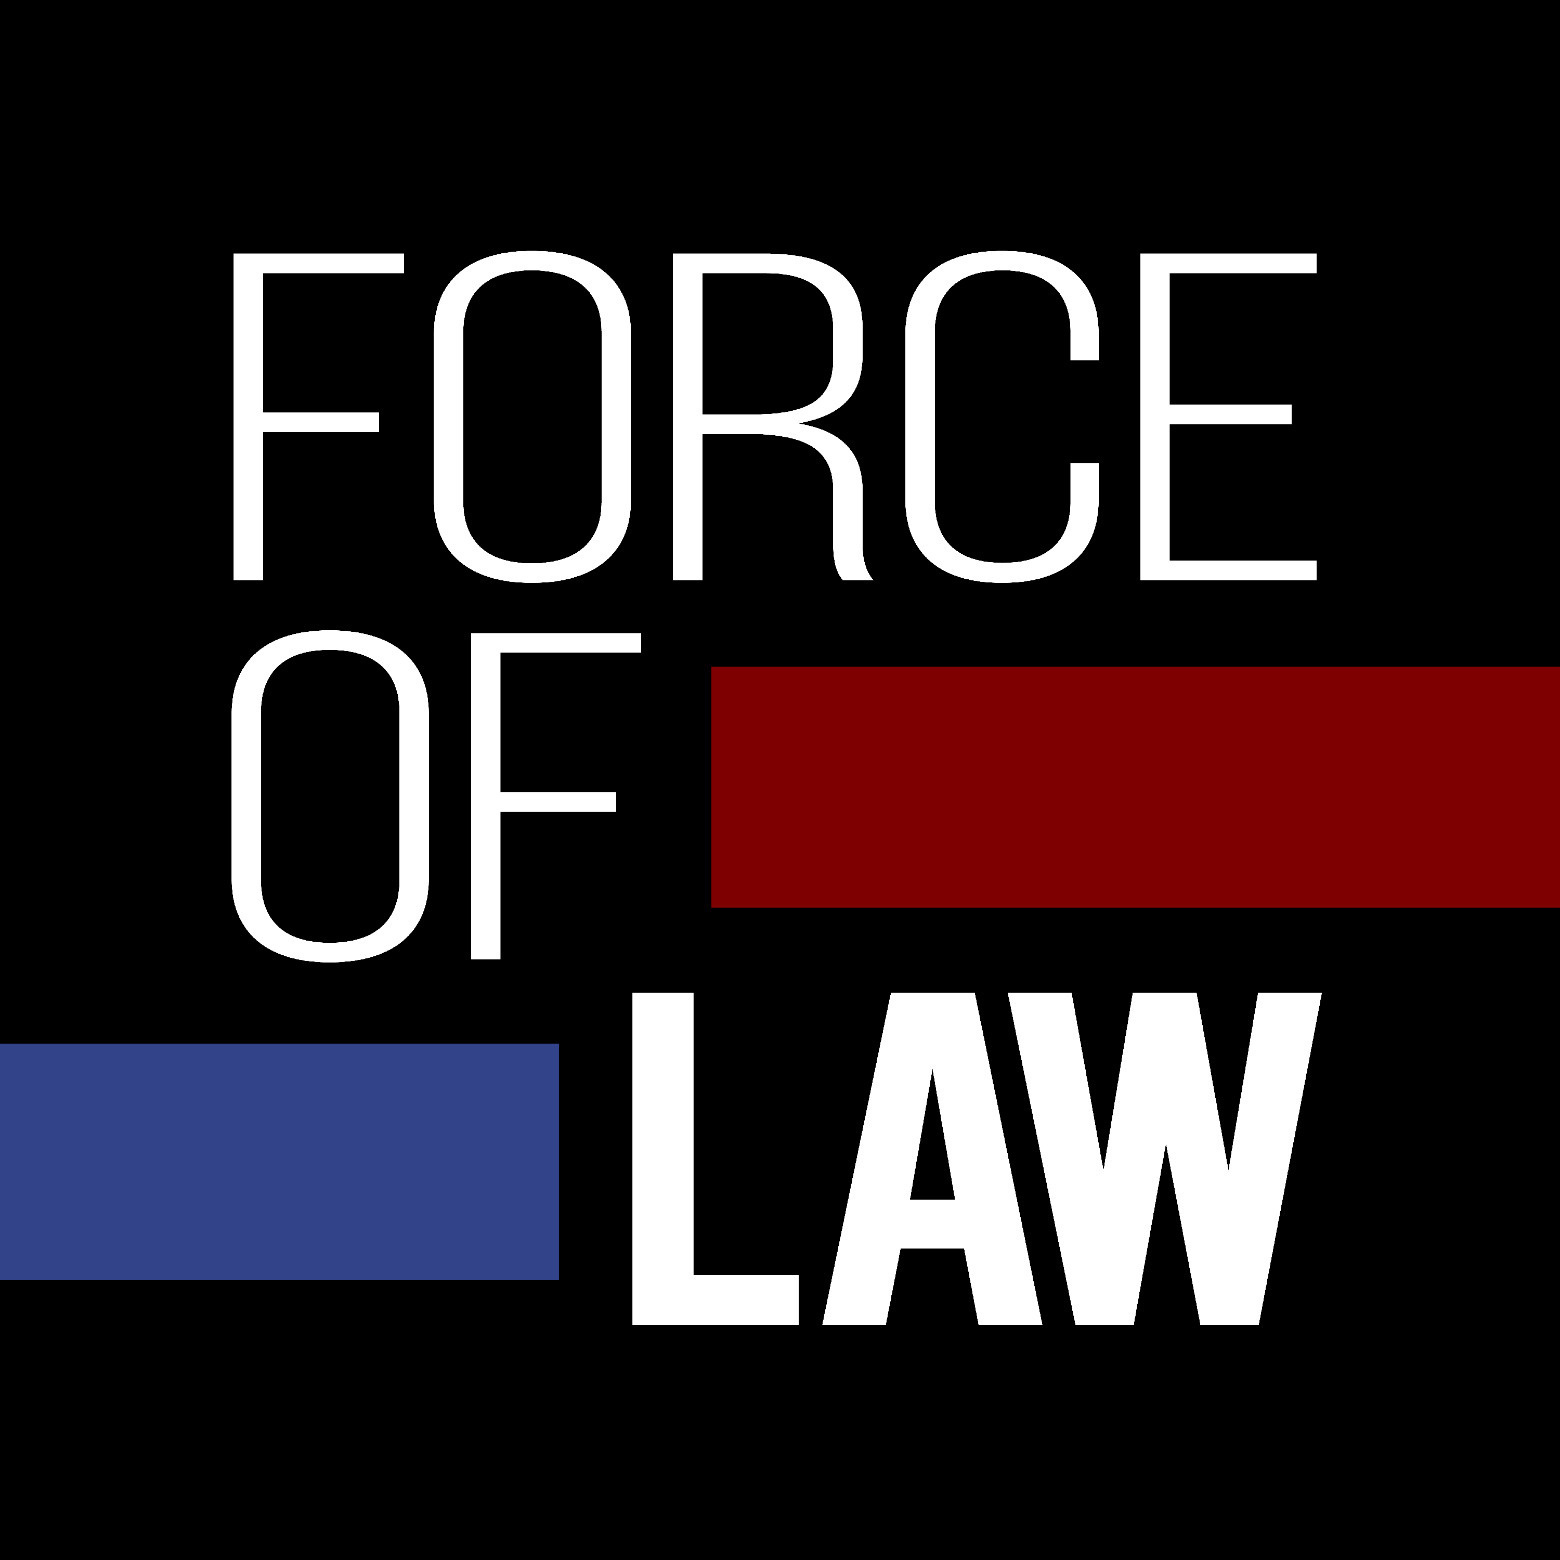 Force of Law